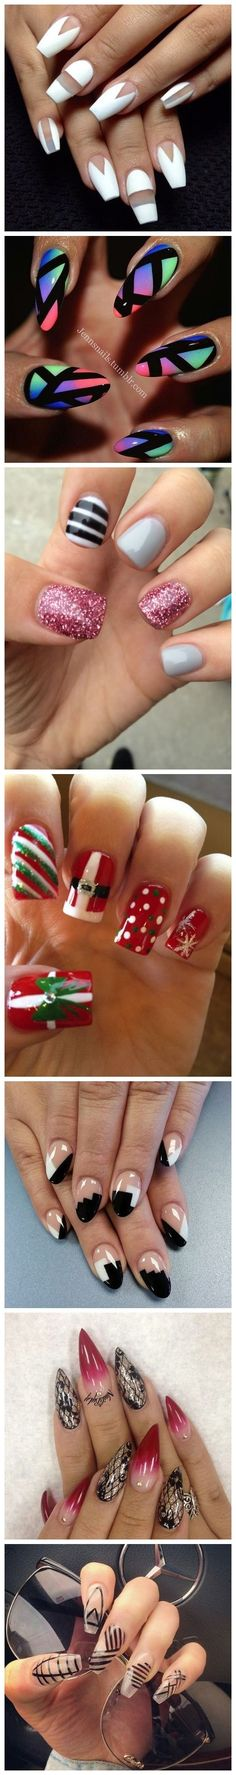 7 Cute & Easy Fall Nail Art Designs, Ideas, Trends & Stickers 2015 | Fashion Te